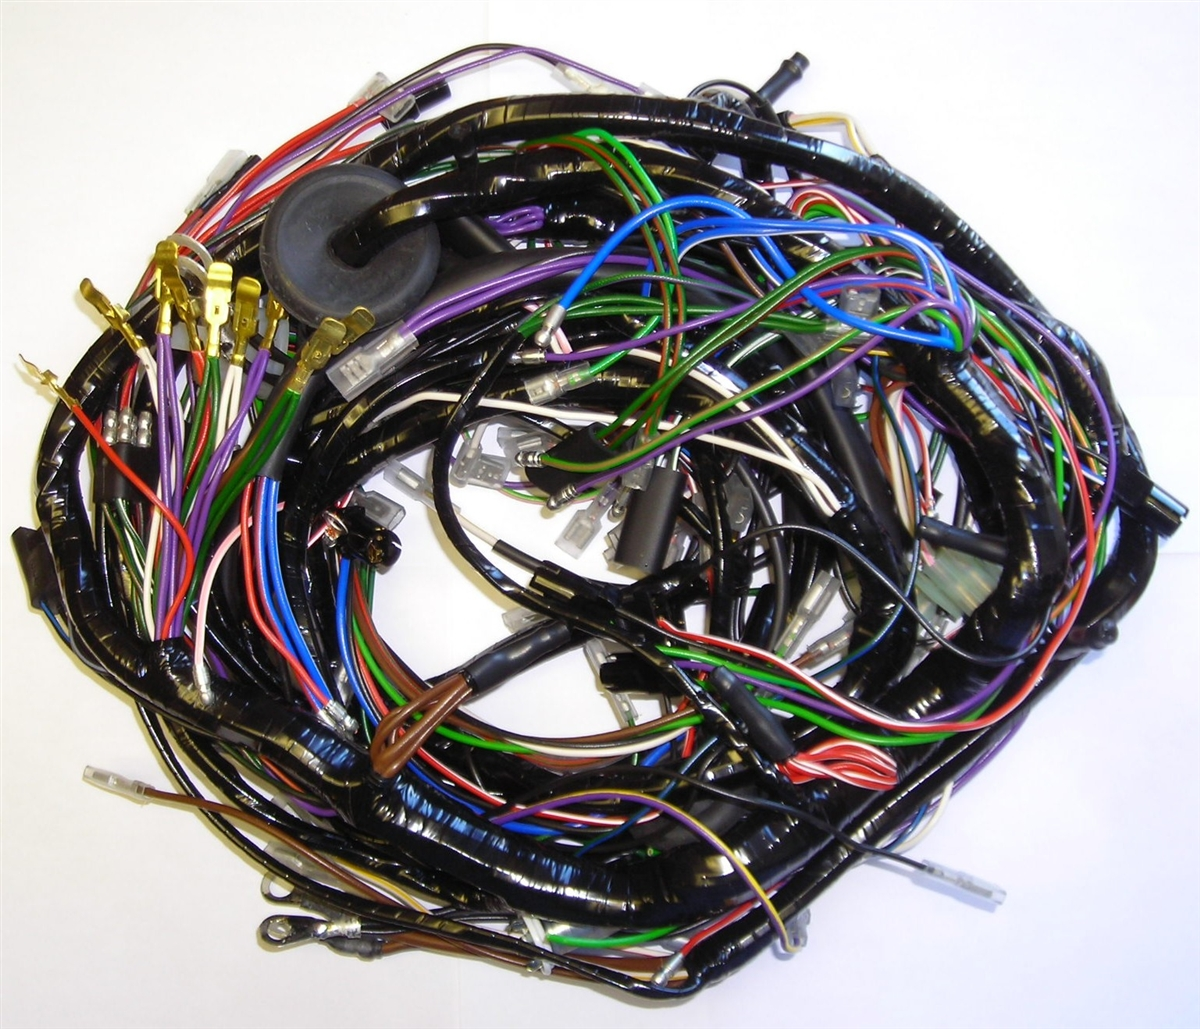 triumph spitfire 1500 main wiring harness rh britishwiring com wiring harness diagram wiring harness tape